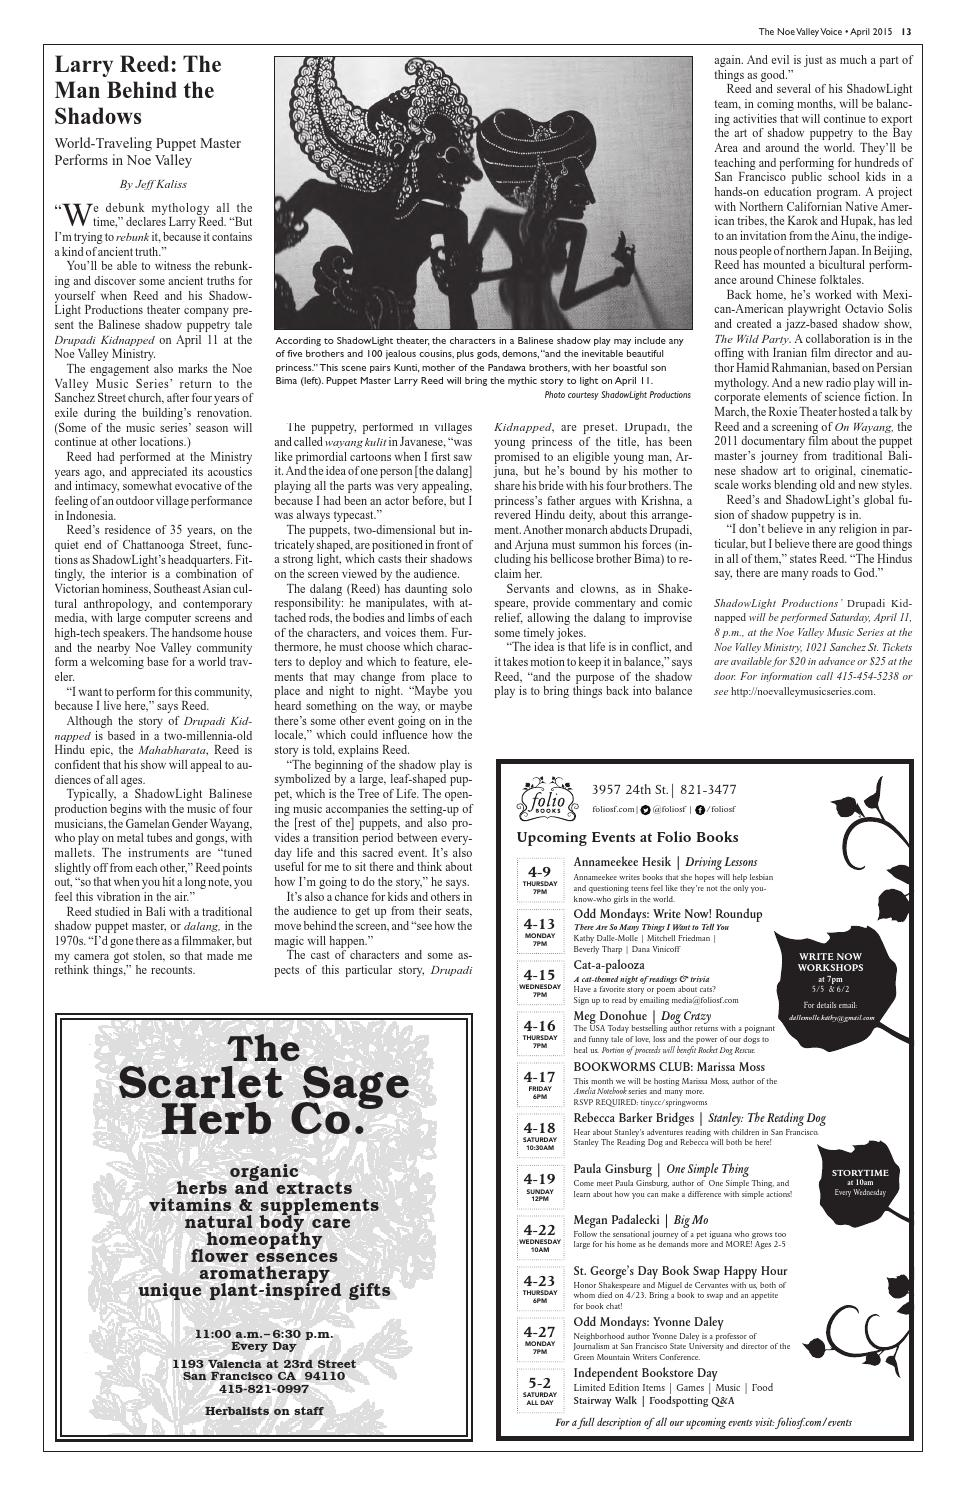 Noe Valley Voice April 2015 by The Noe Valley Voice - issuu